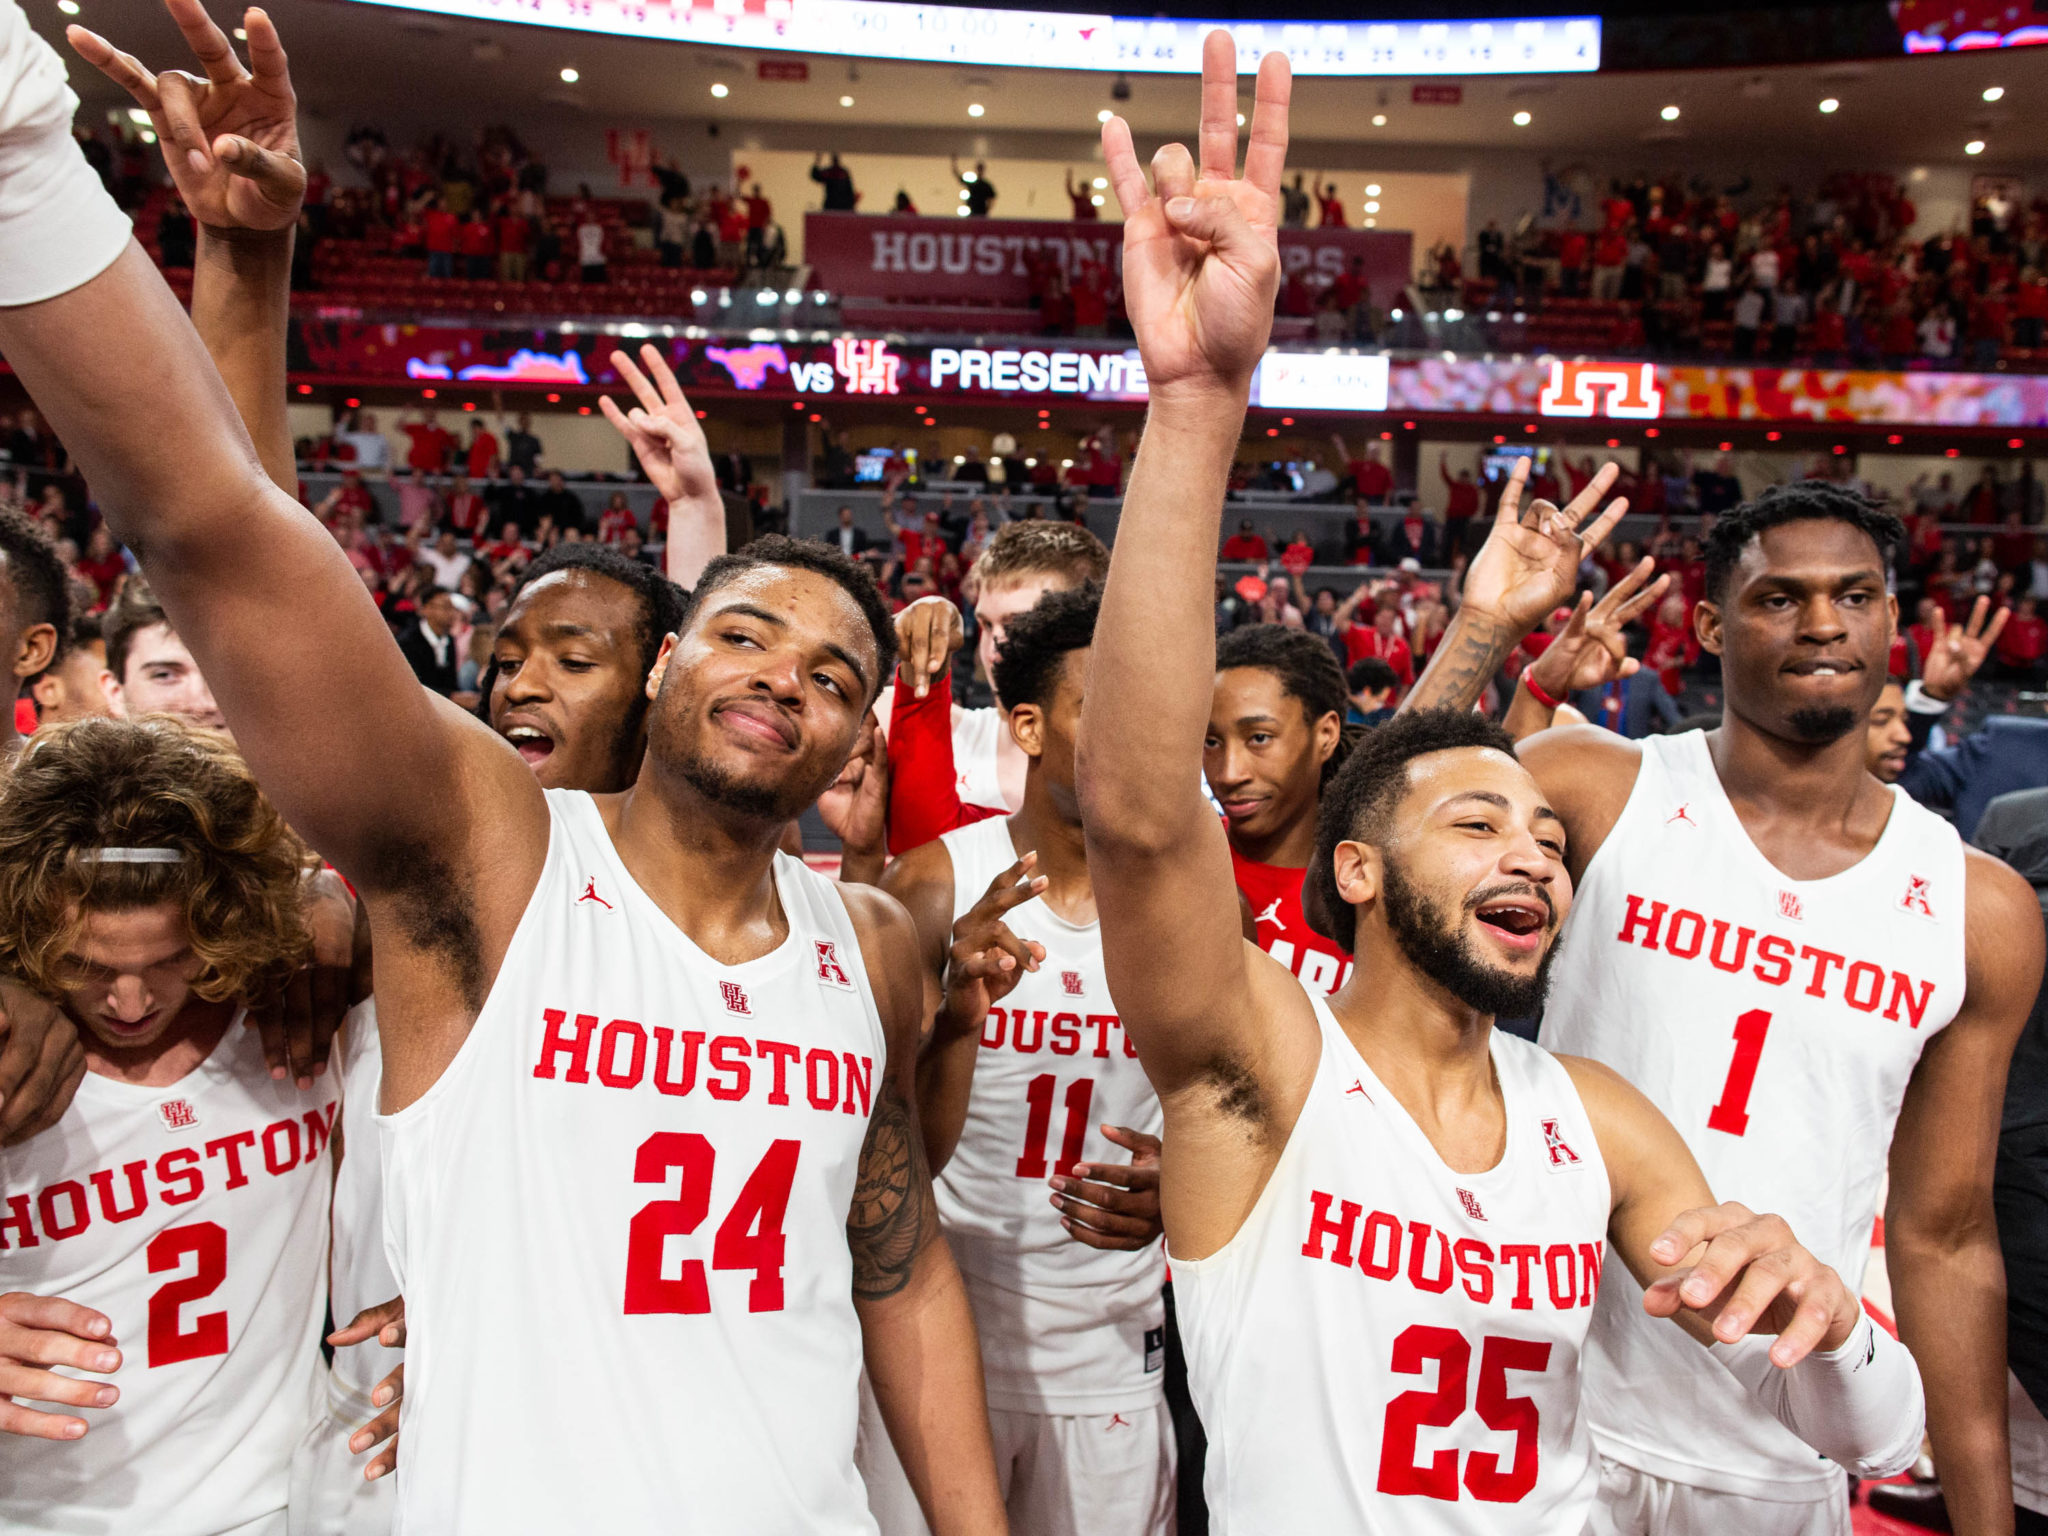 University of Houston Cougars celebration